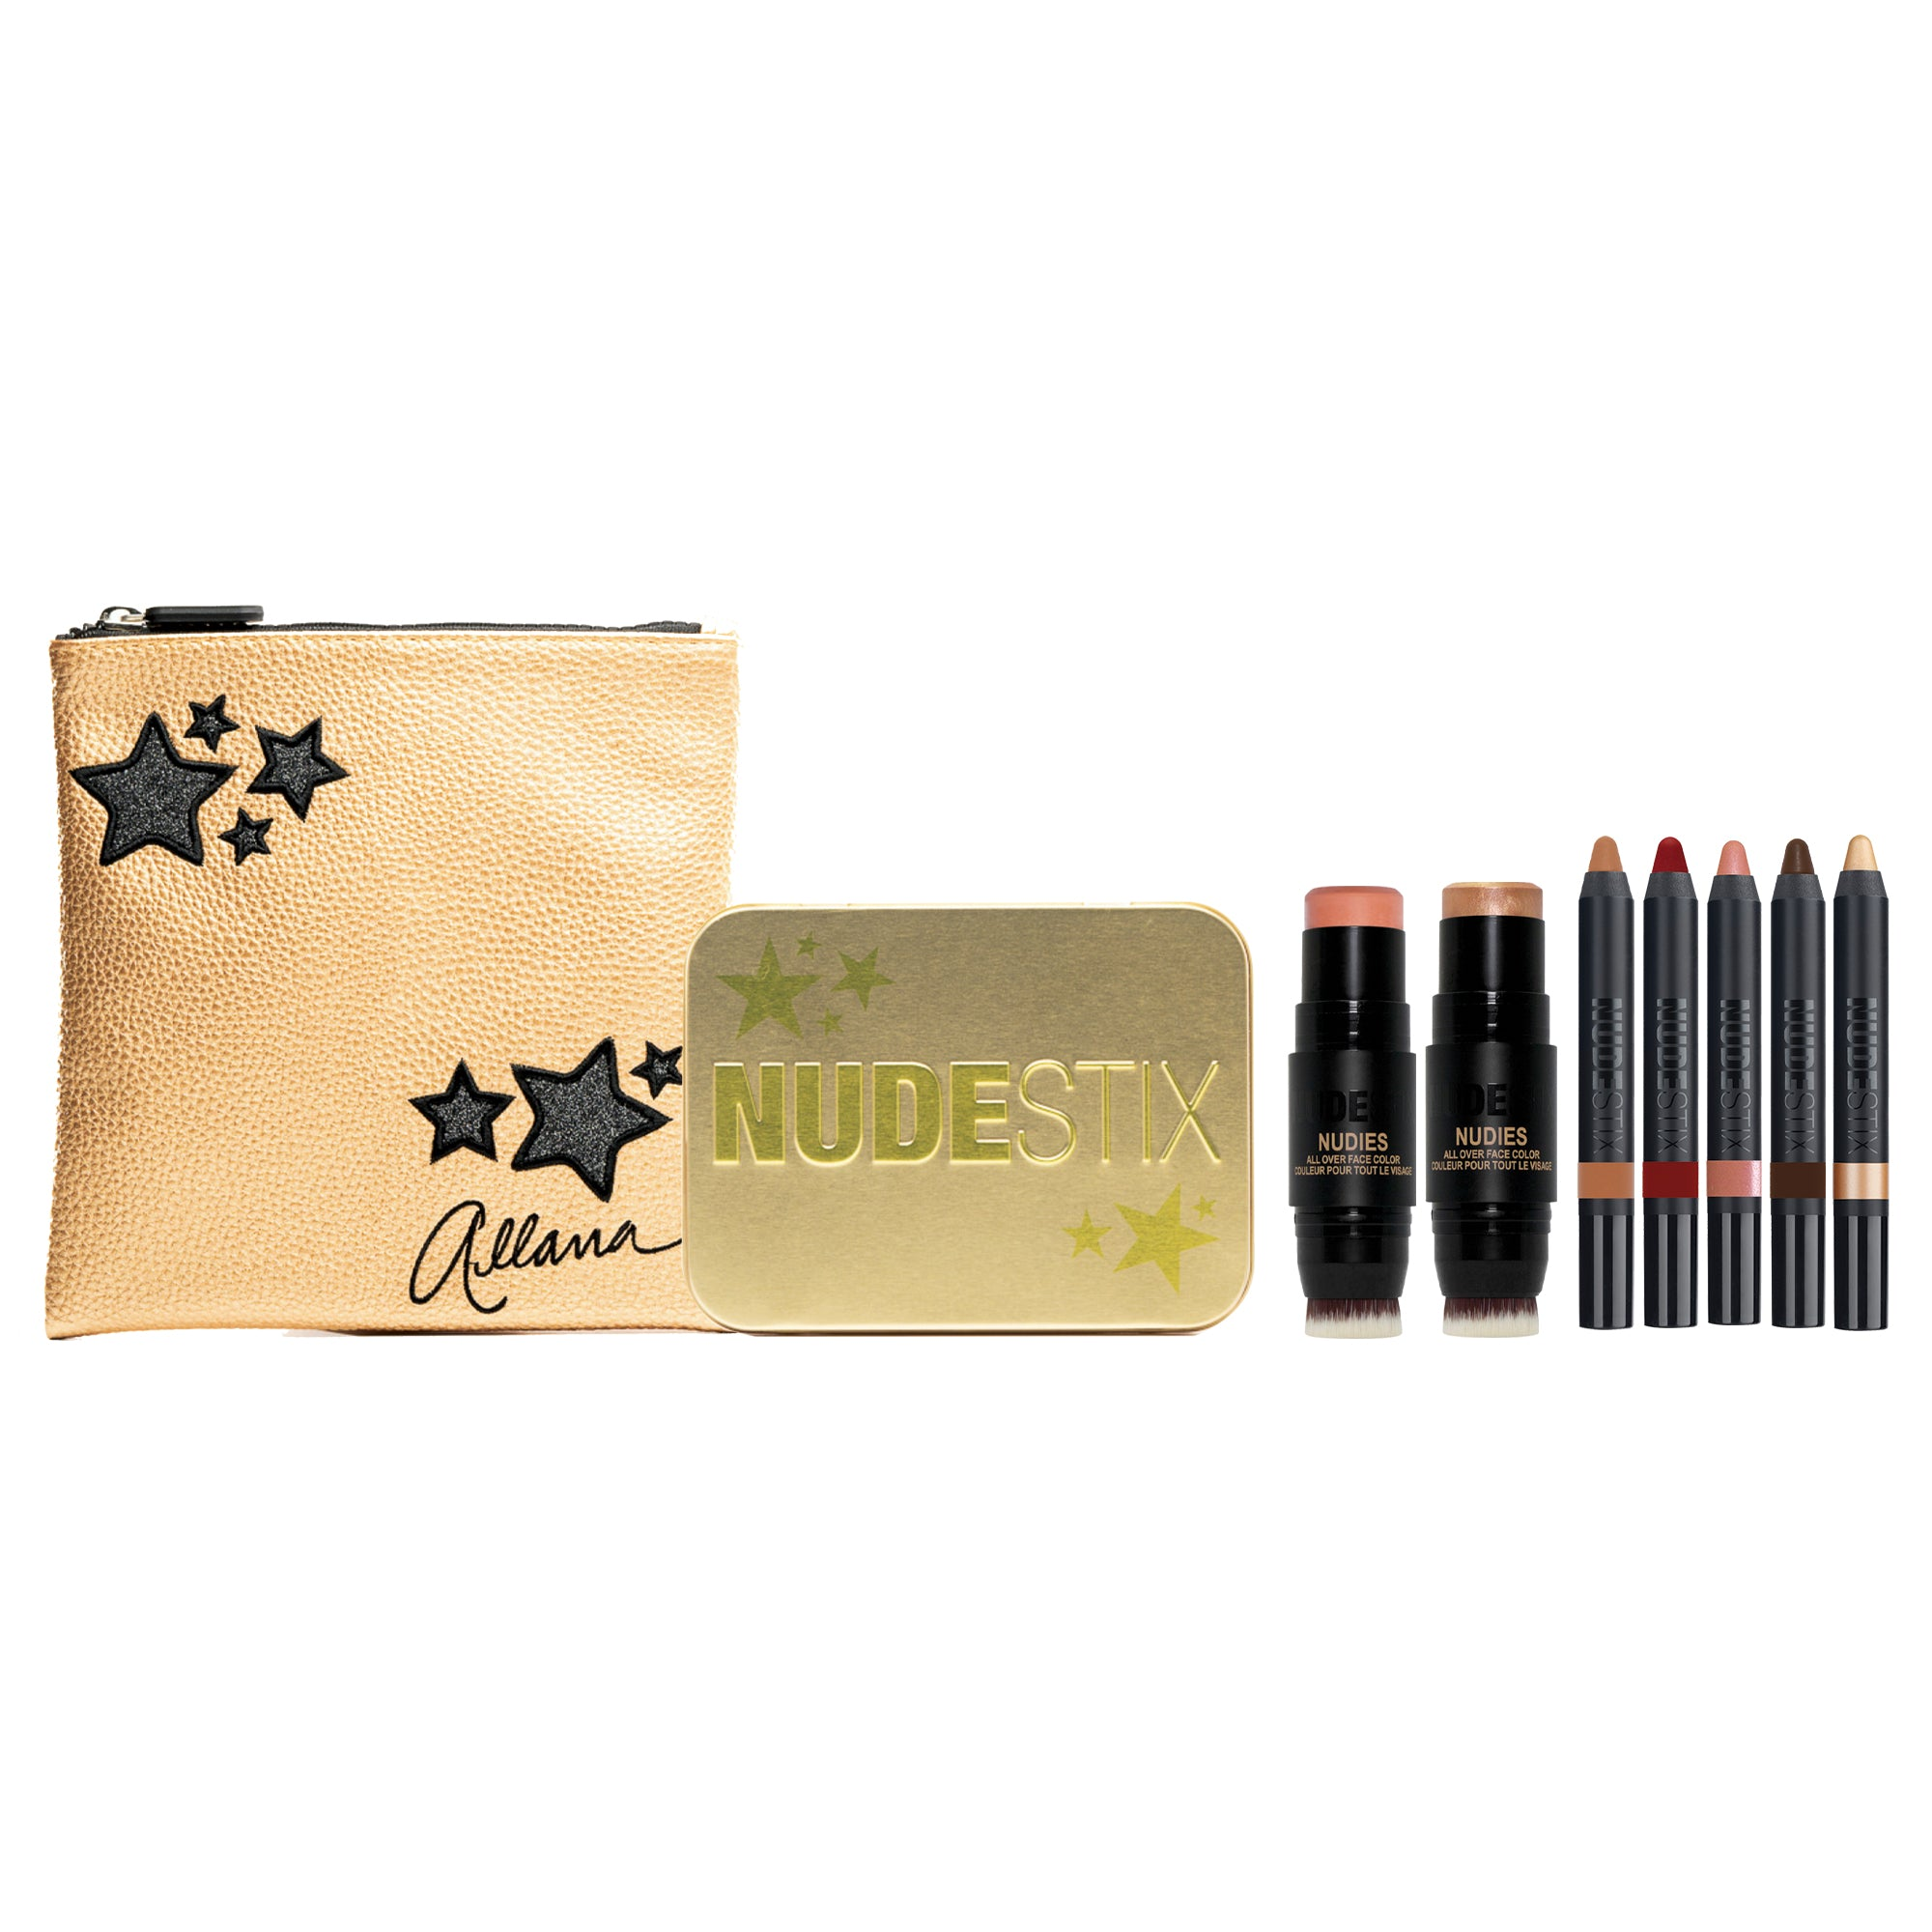 NUDESTIX Matinee to Soiree Kit products with gold makeup pouch and gold makeup tin